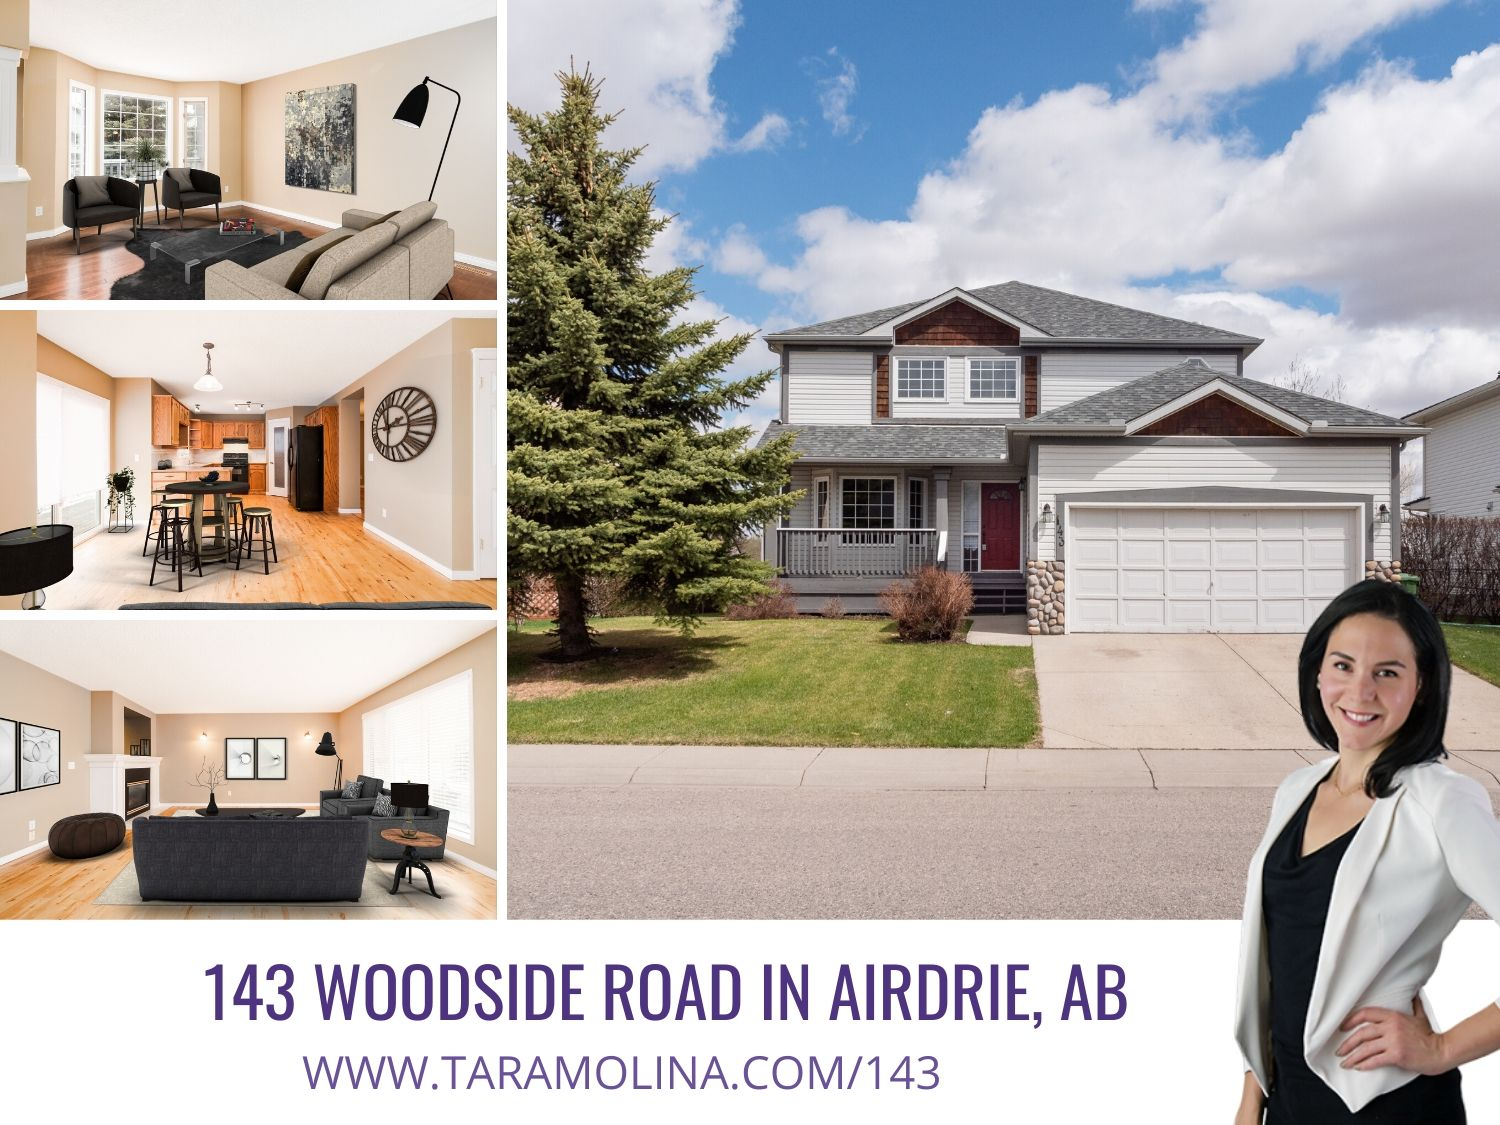 143 Woodside Road in Airdrie